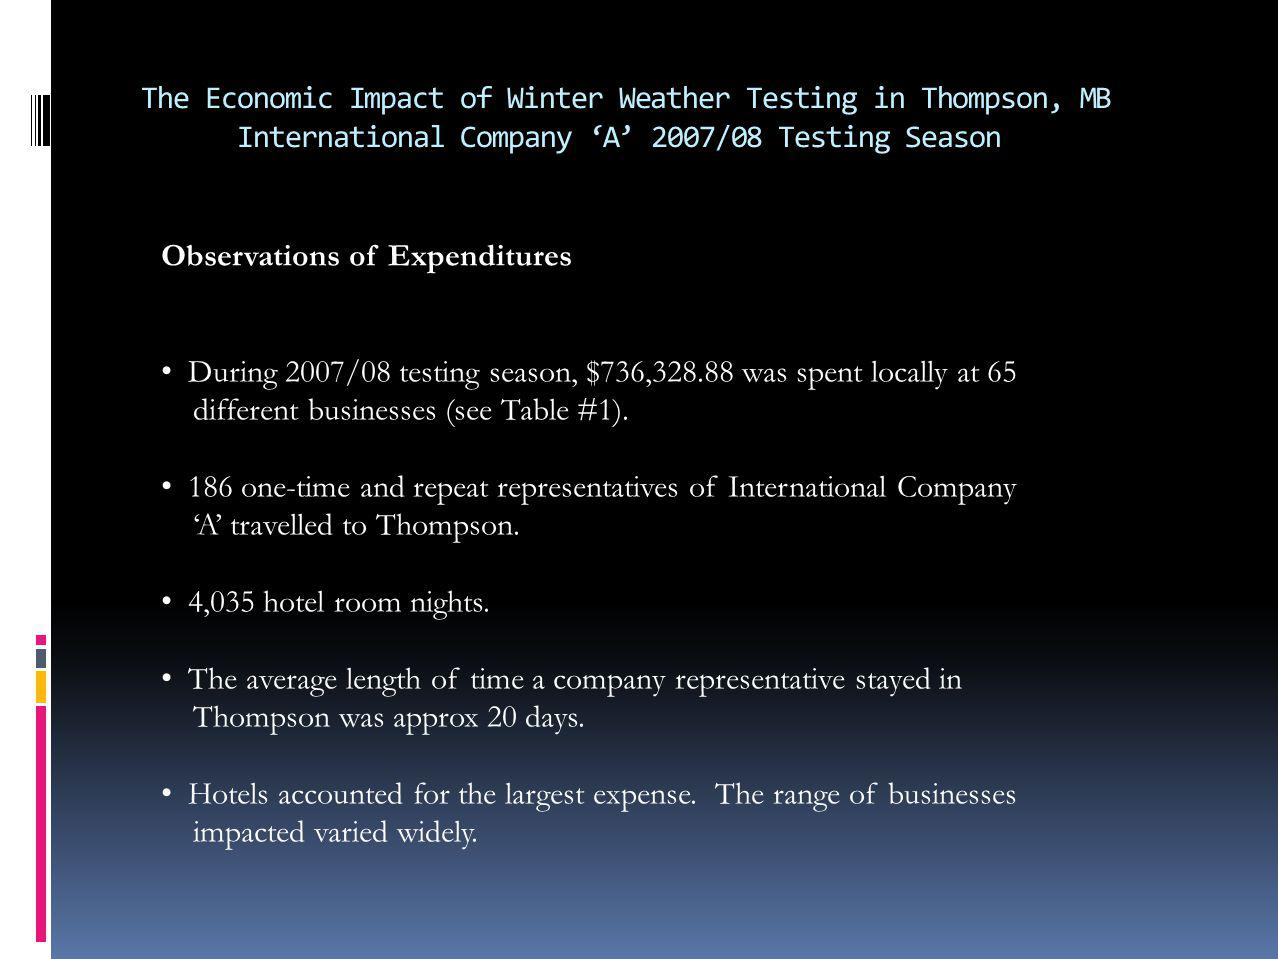 The Economic Impact of Winter Weather Testing in Thompson, MB International Company A 2007/08 Testing Season Observations of Expenditures During 2007/